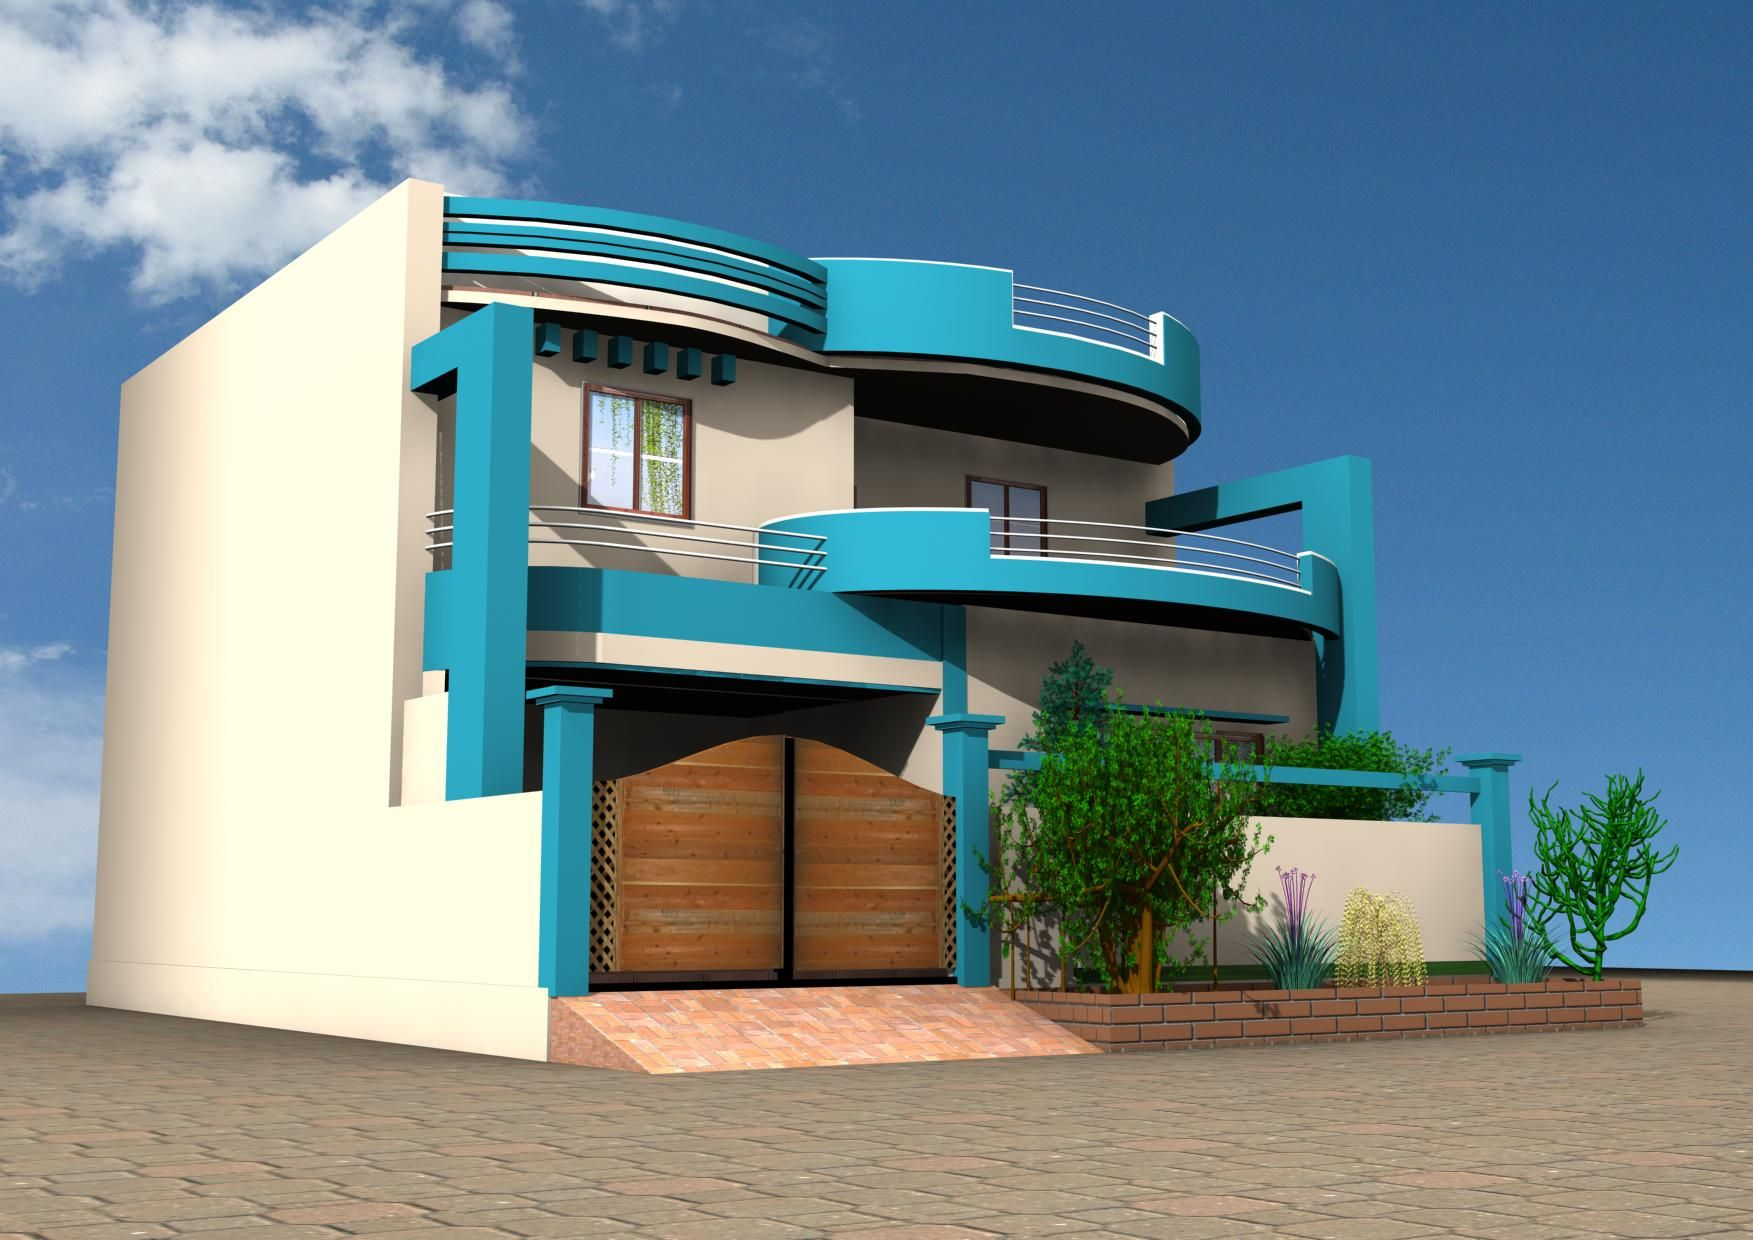 3d home design images hd 1080p Home design 3d